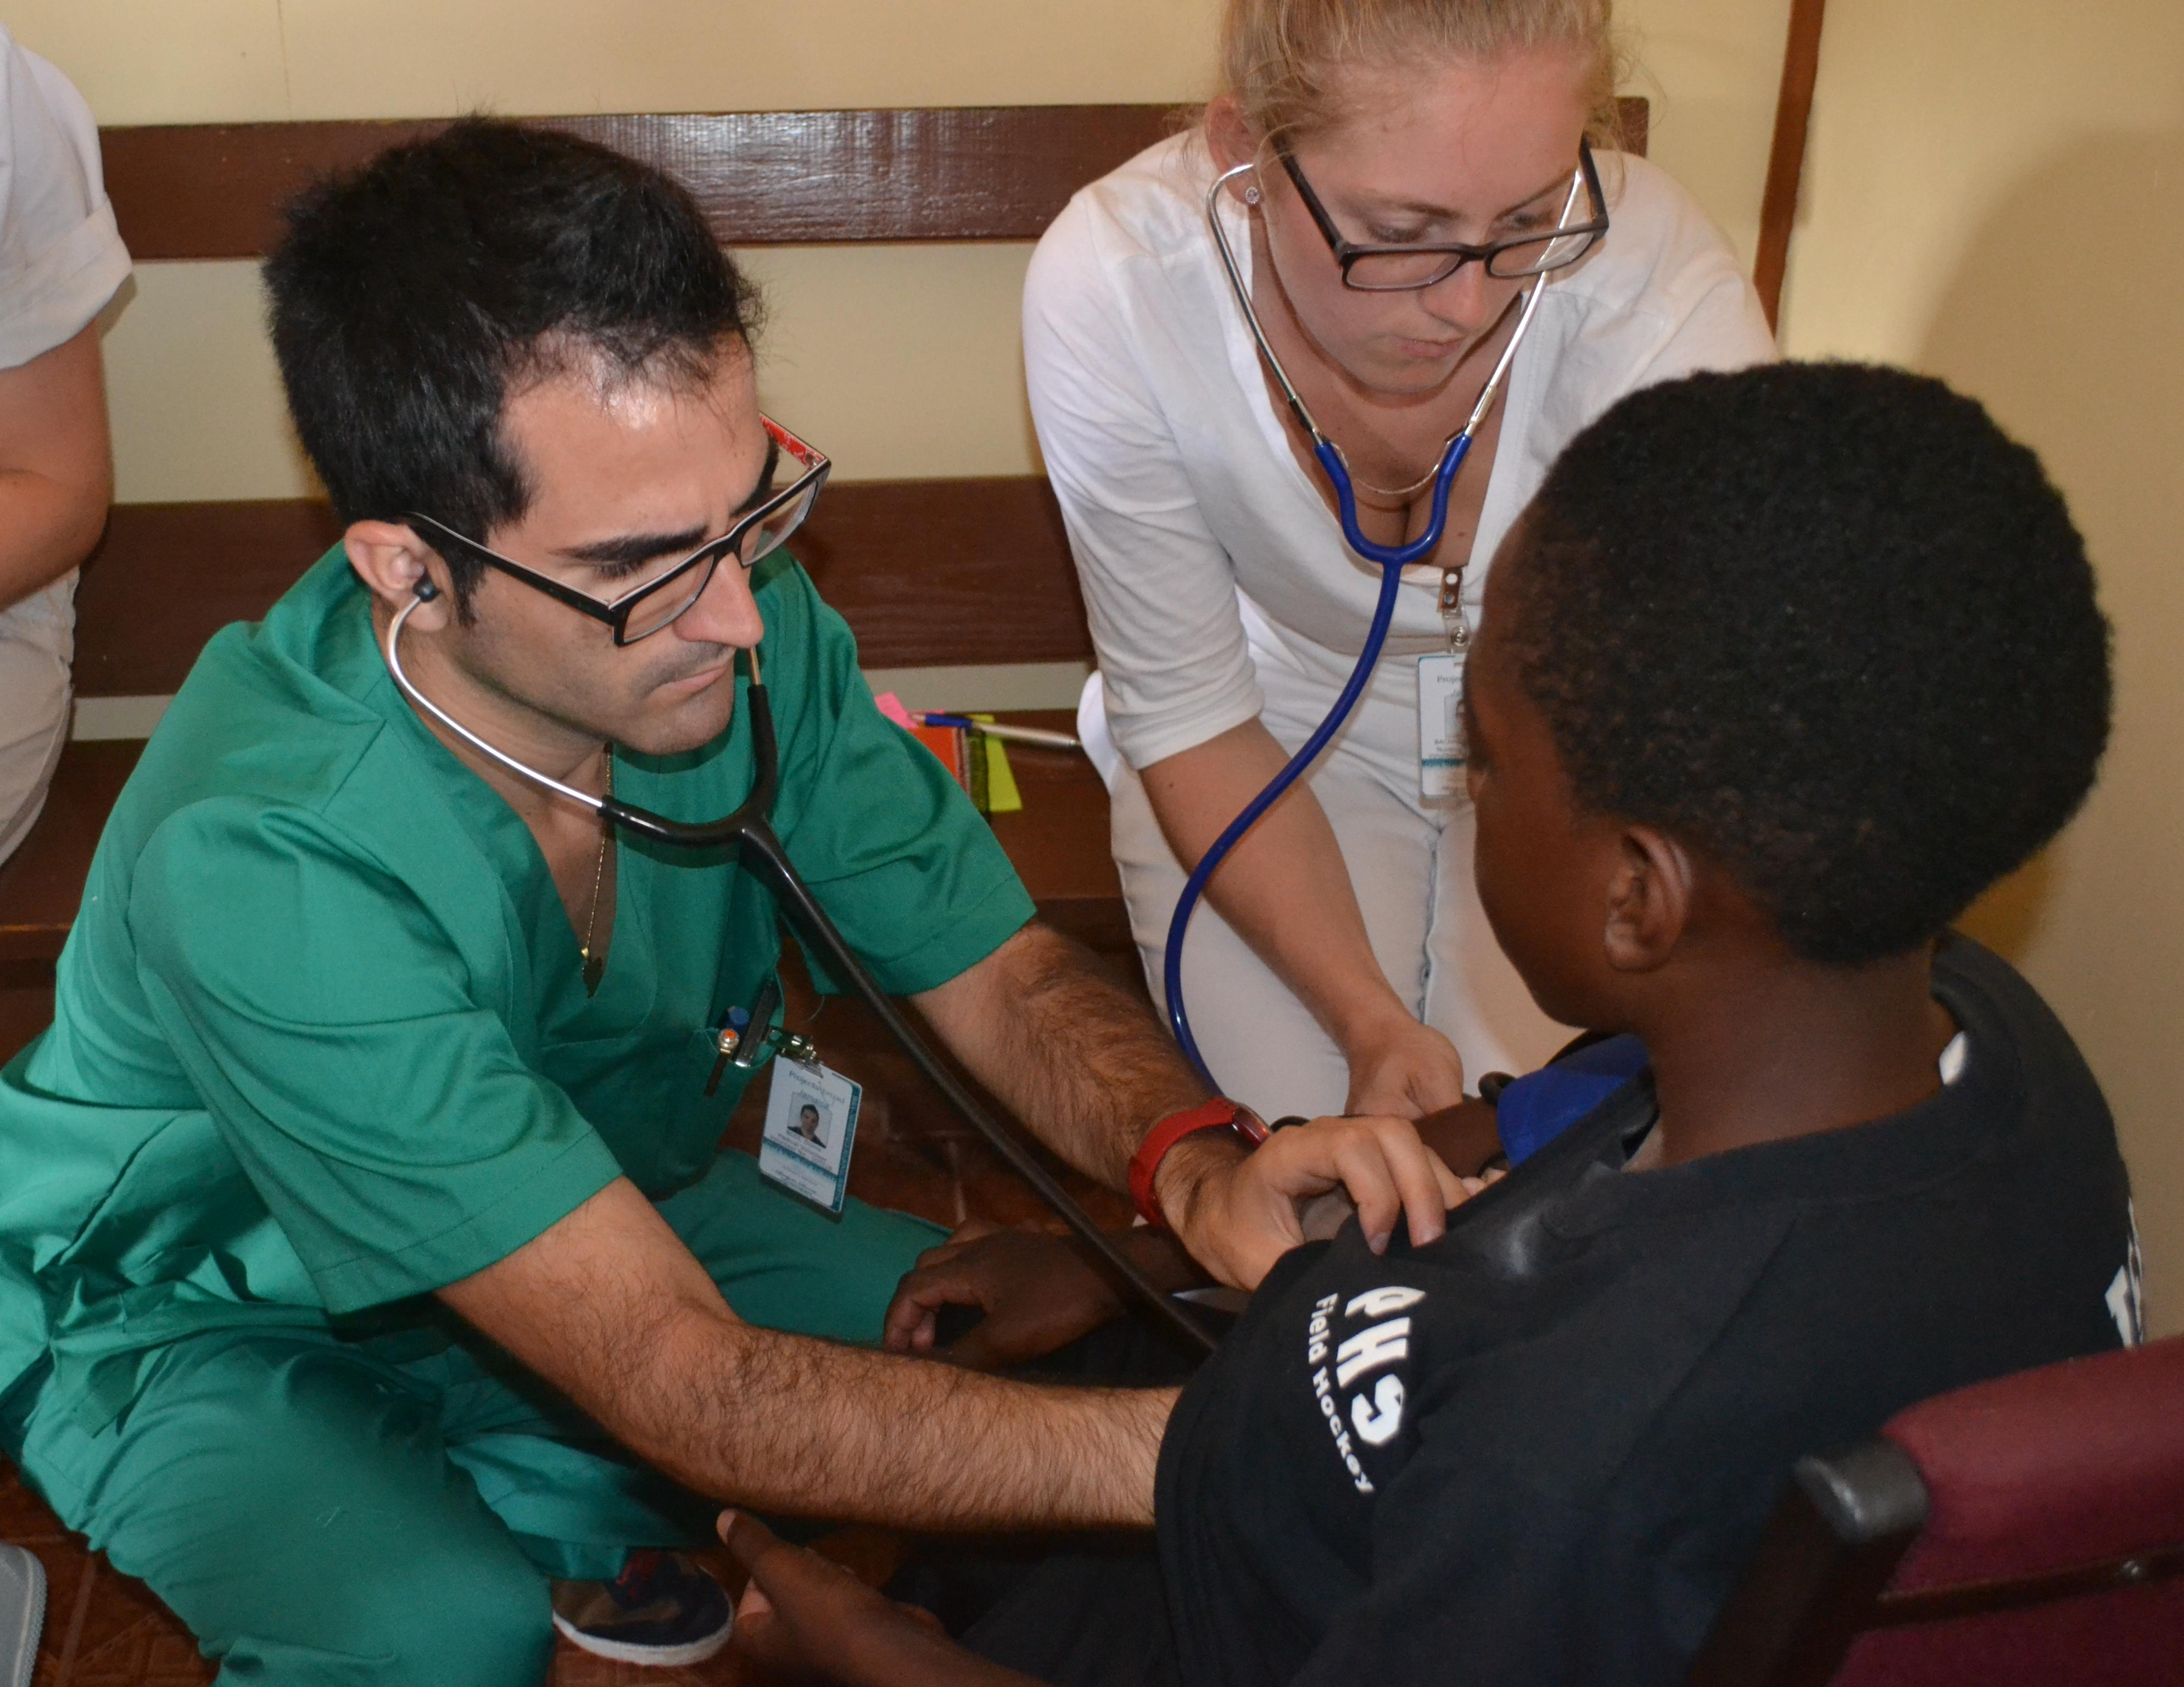 Male and female interns examine a young boy's chest at a Community Outreach Day in Jamaica.